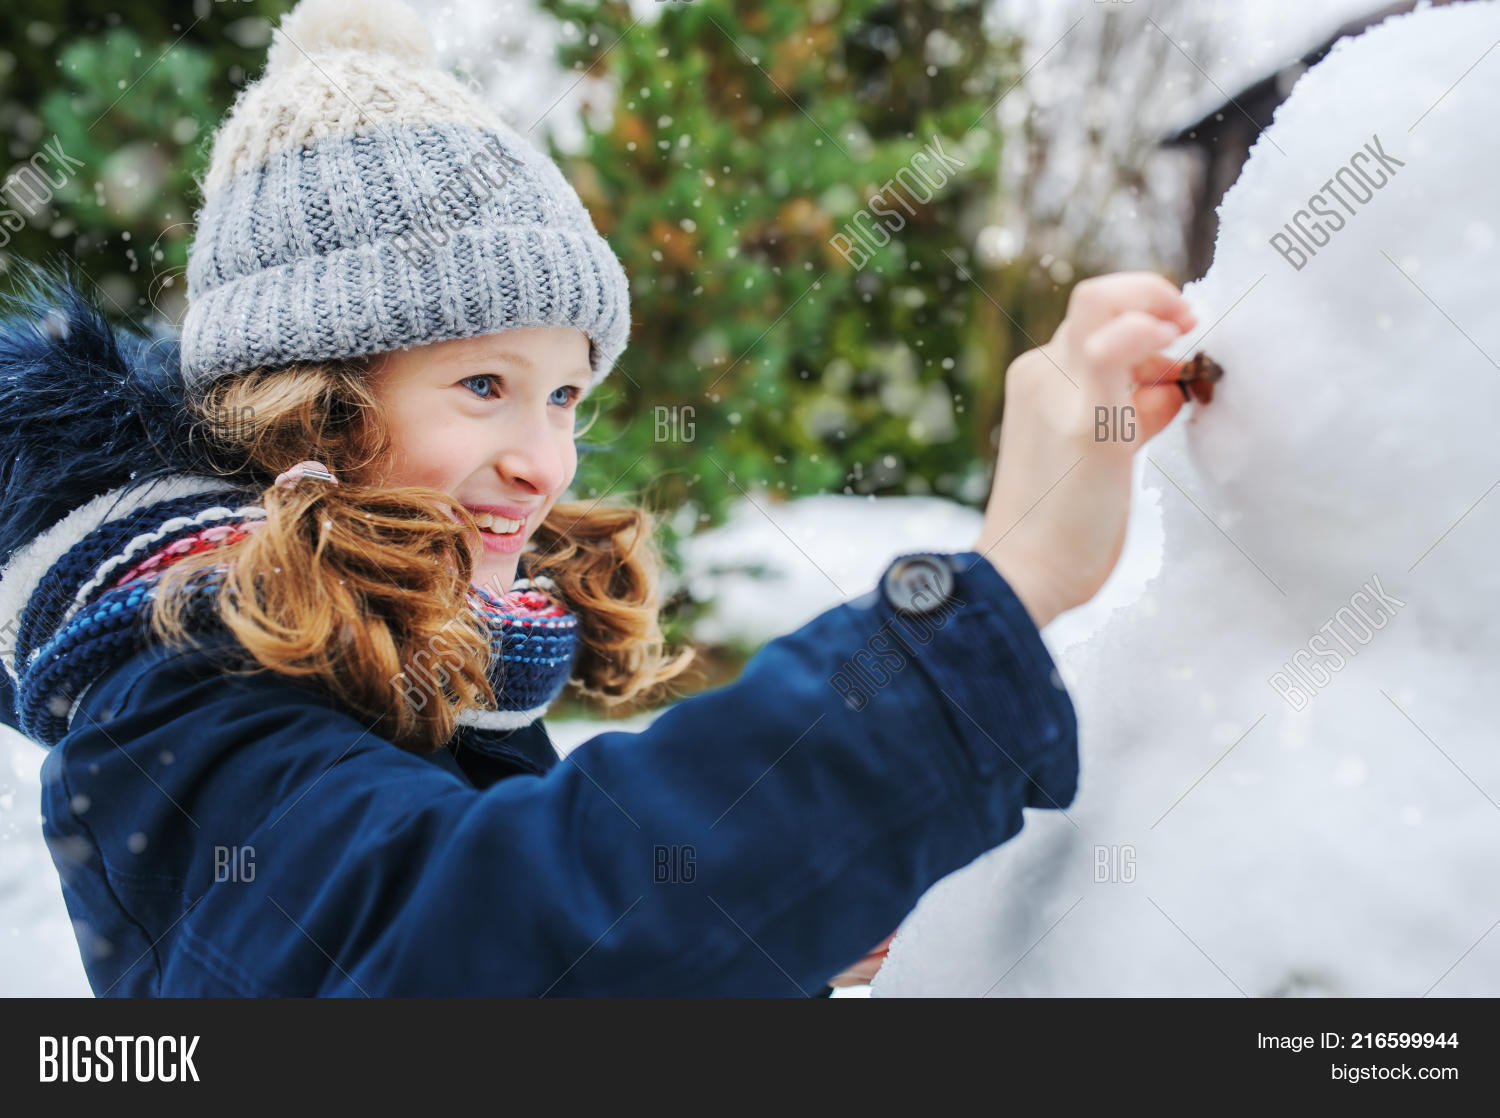 How to take a child in the winter, if he is from 2 to 8 years